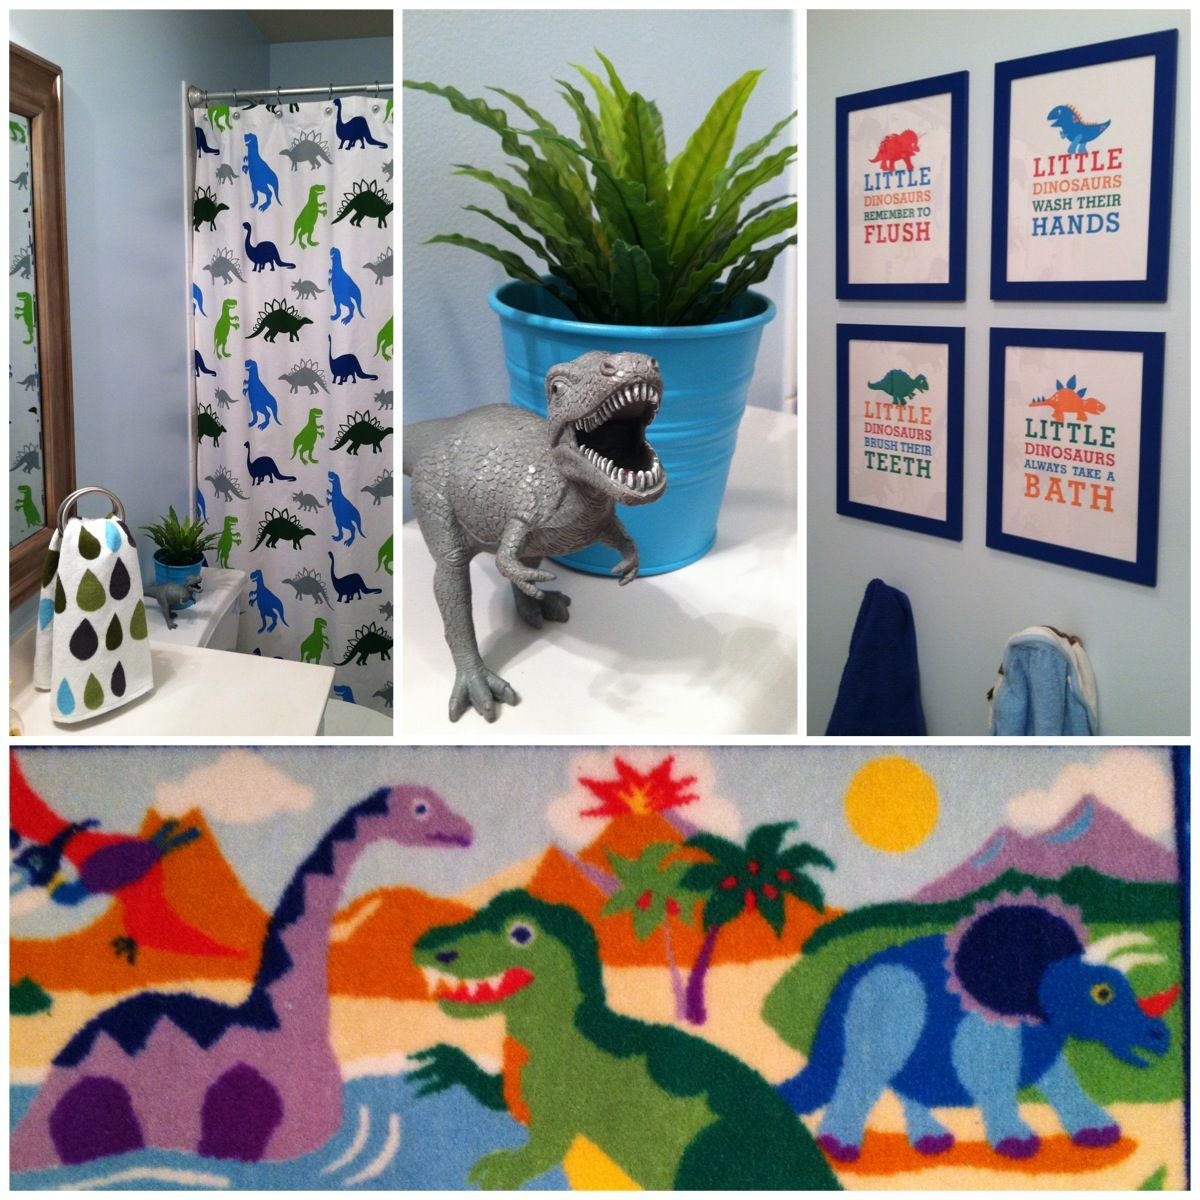 Dinosaur Bathroom I Put Together For My 3 Yr Old Son Who Said It Has To Have Blue Paint On The Walls With Little Boy Bathroom Bathroom Kids Kids Bedroom Space